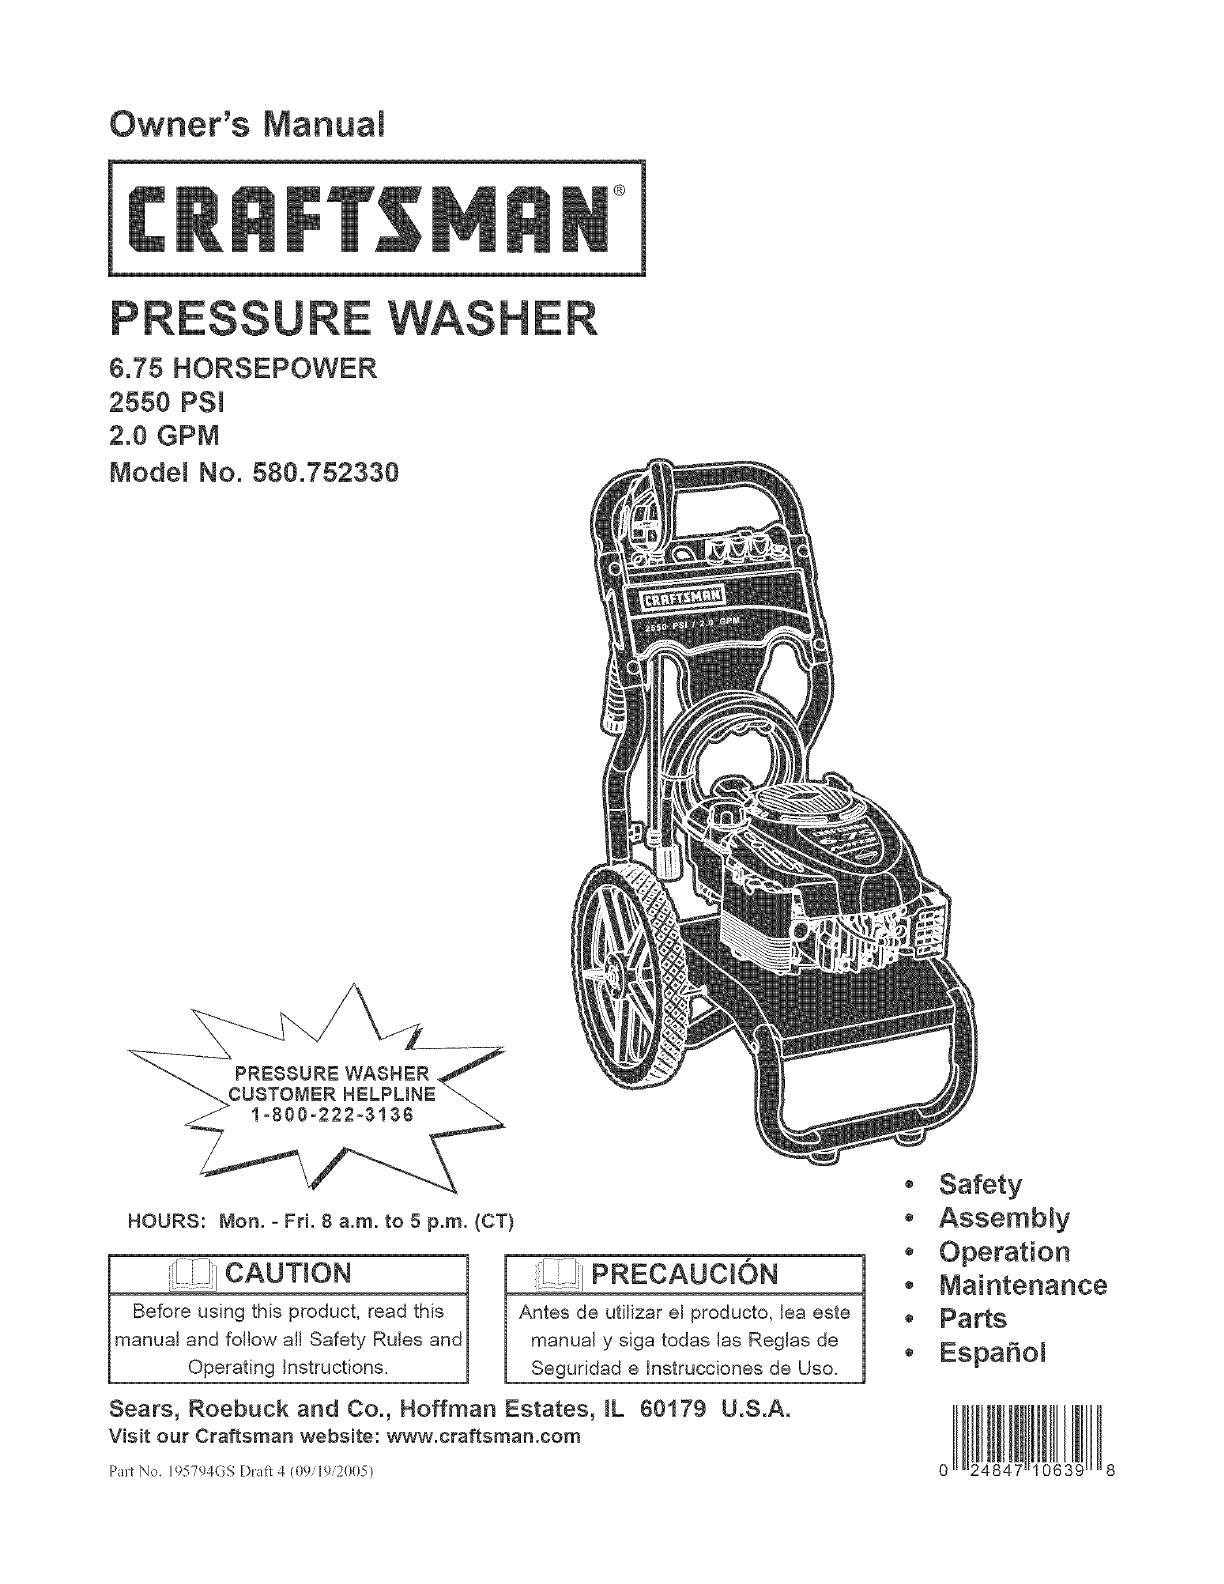 Craftsman 580752330 User Manual PRESSURE WASHER Manuals